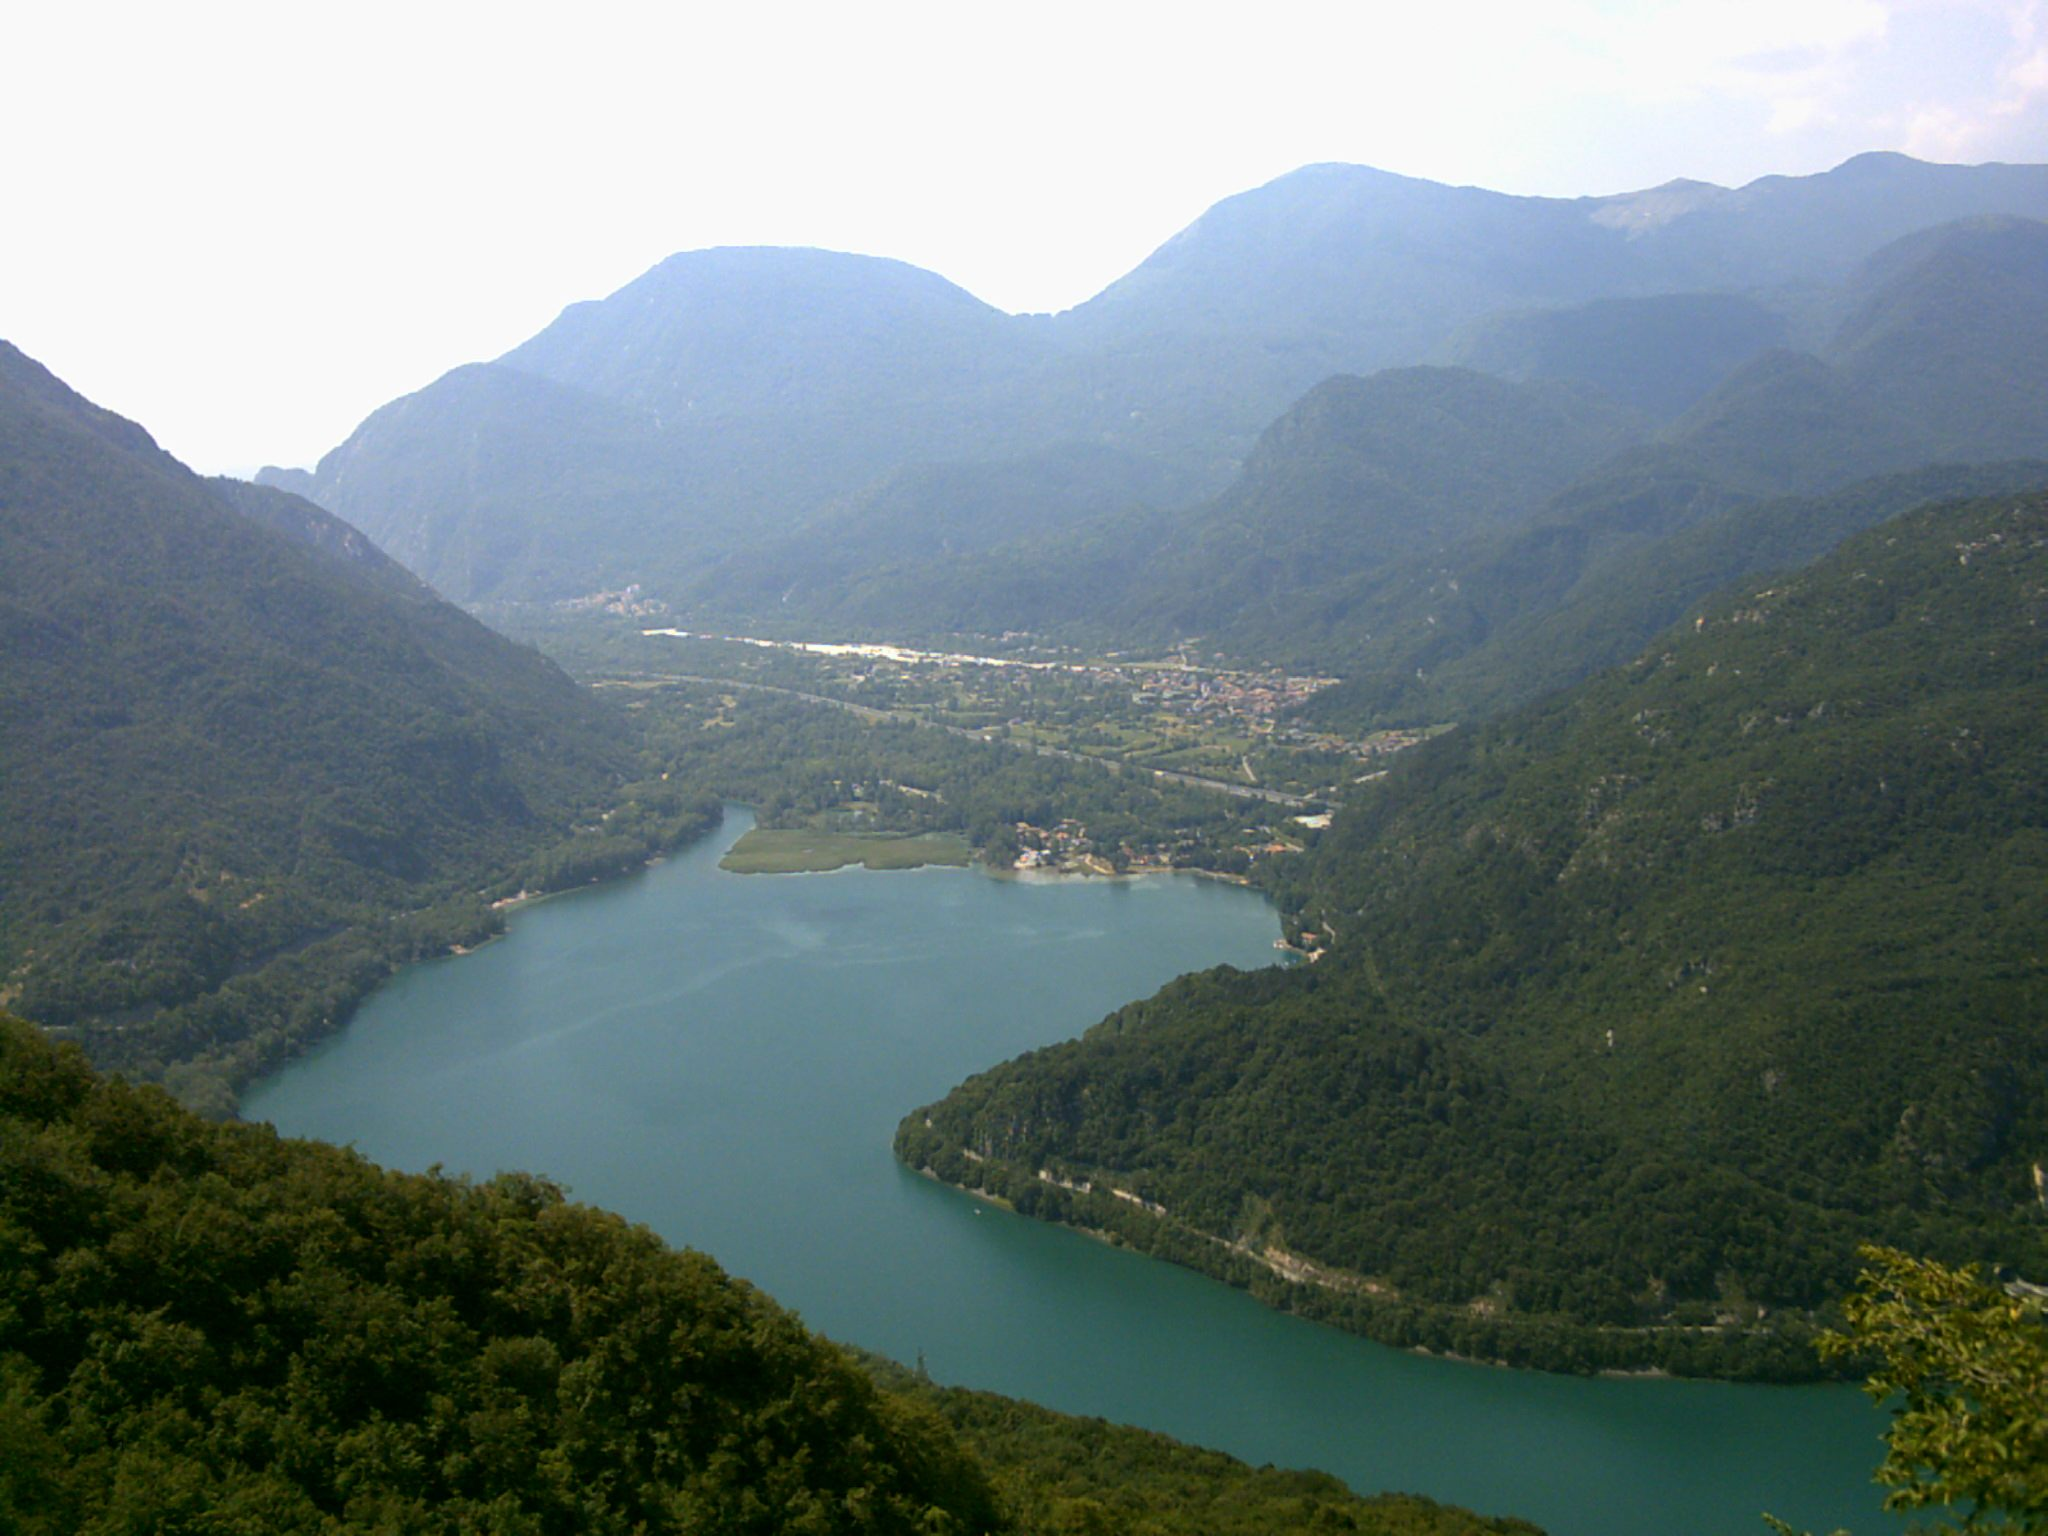 The Cavazzo lake